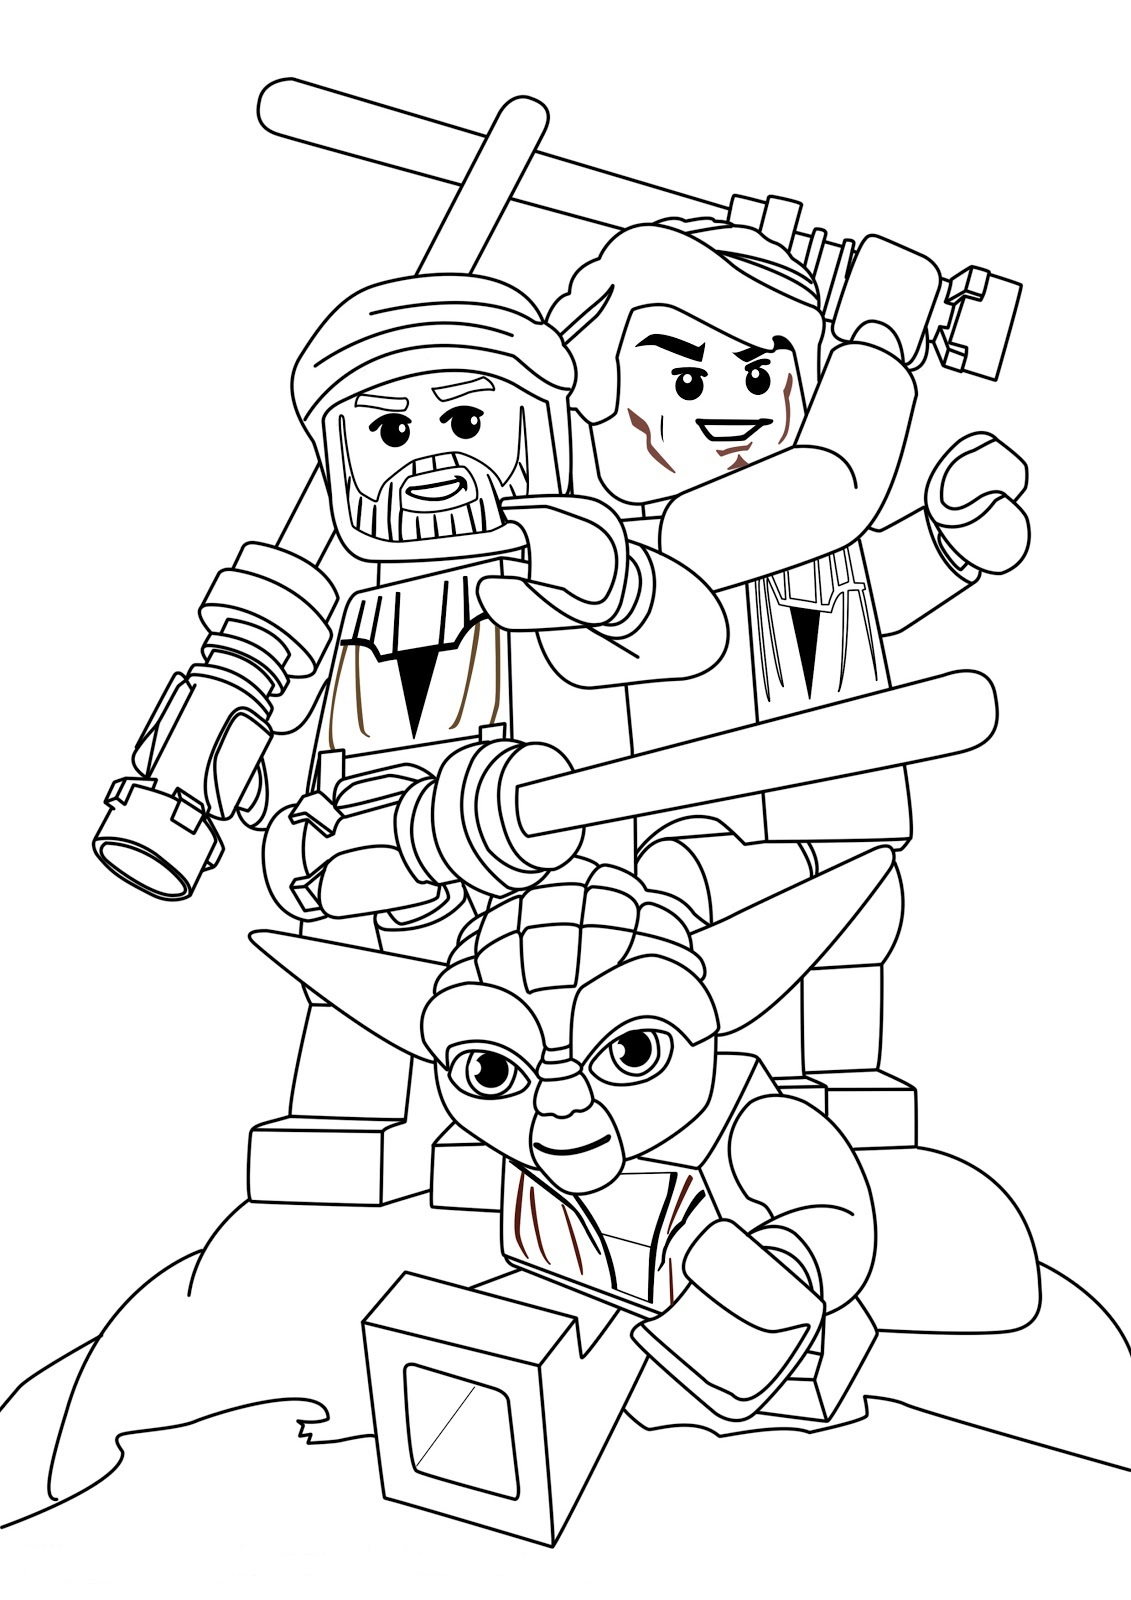 Star wars coloring pages free printable star wars for Free printable lego coloring pages for kids